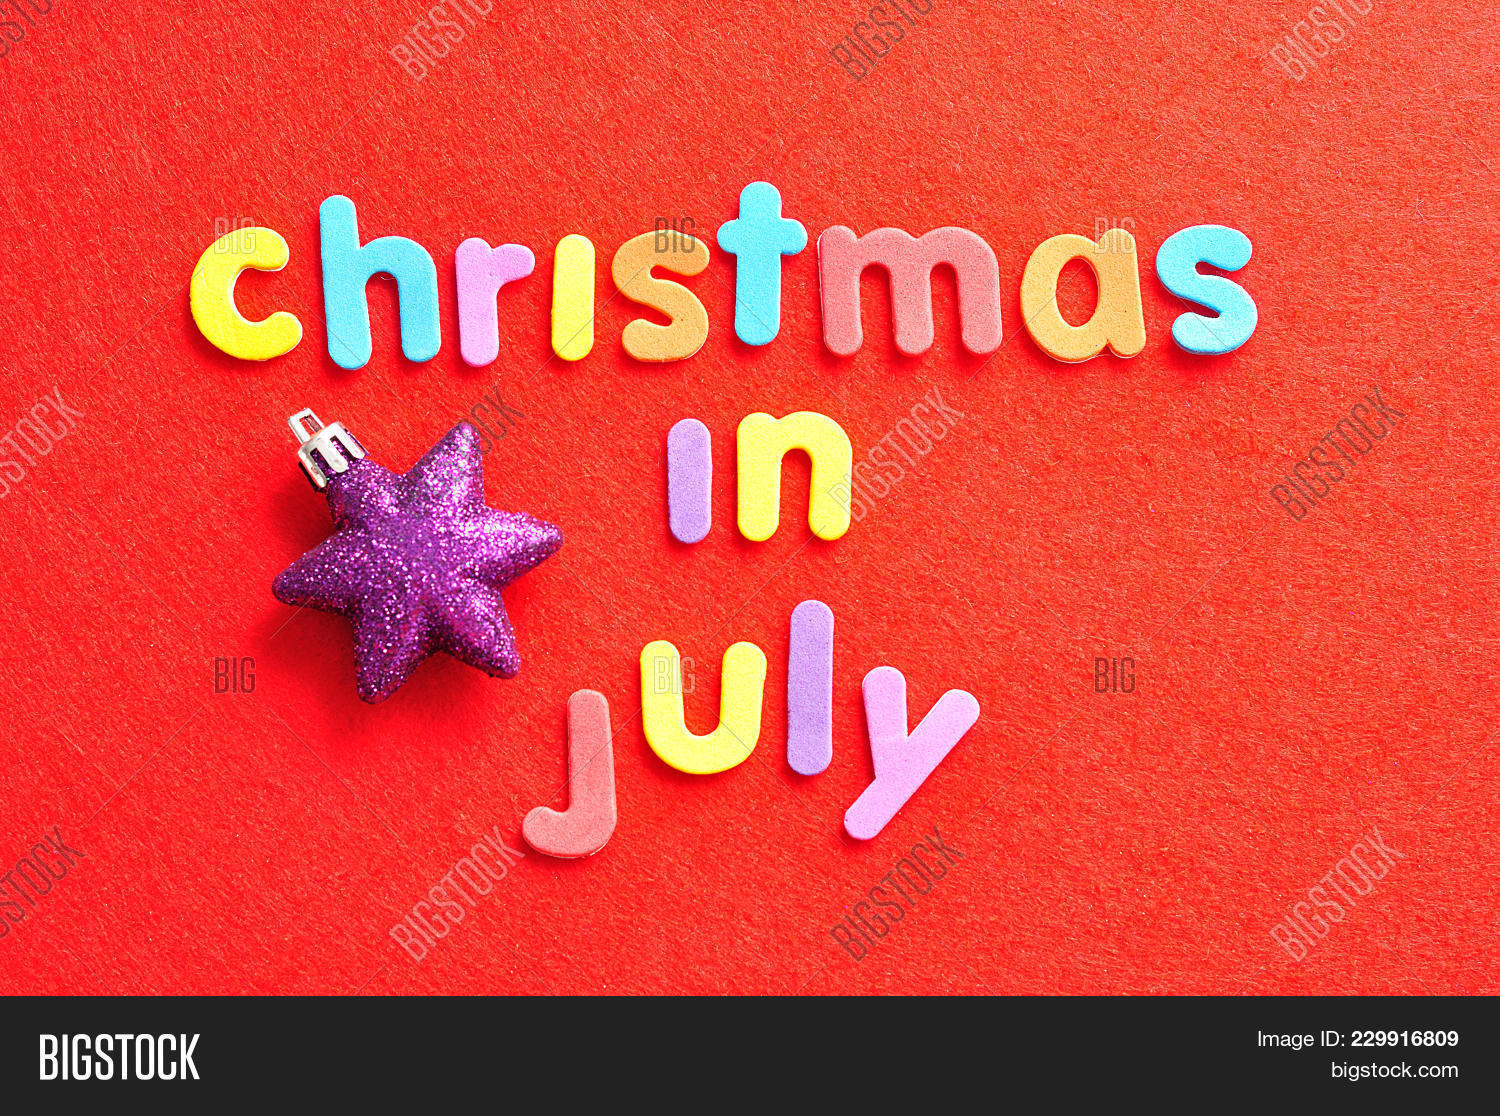 Christmas In July Background Images.Words Christmas July Image Photo Free Trial Bigstock